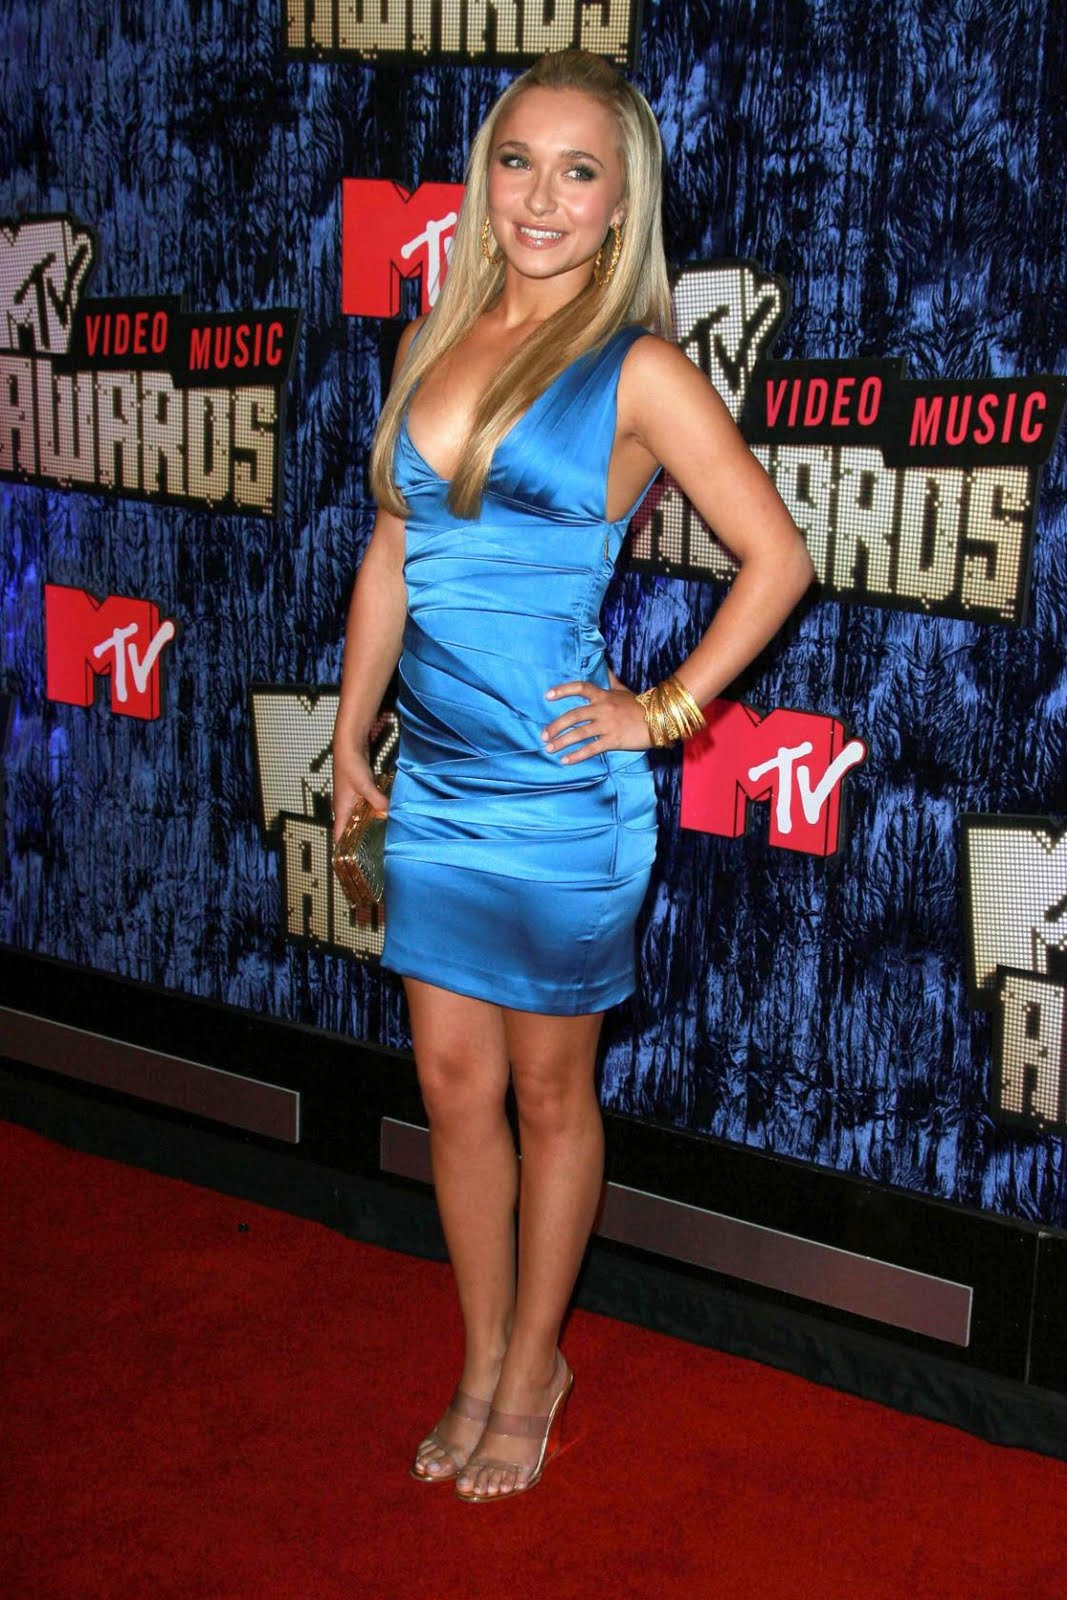 Hayden Panettiere Naked Pictures